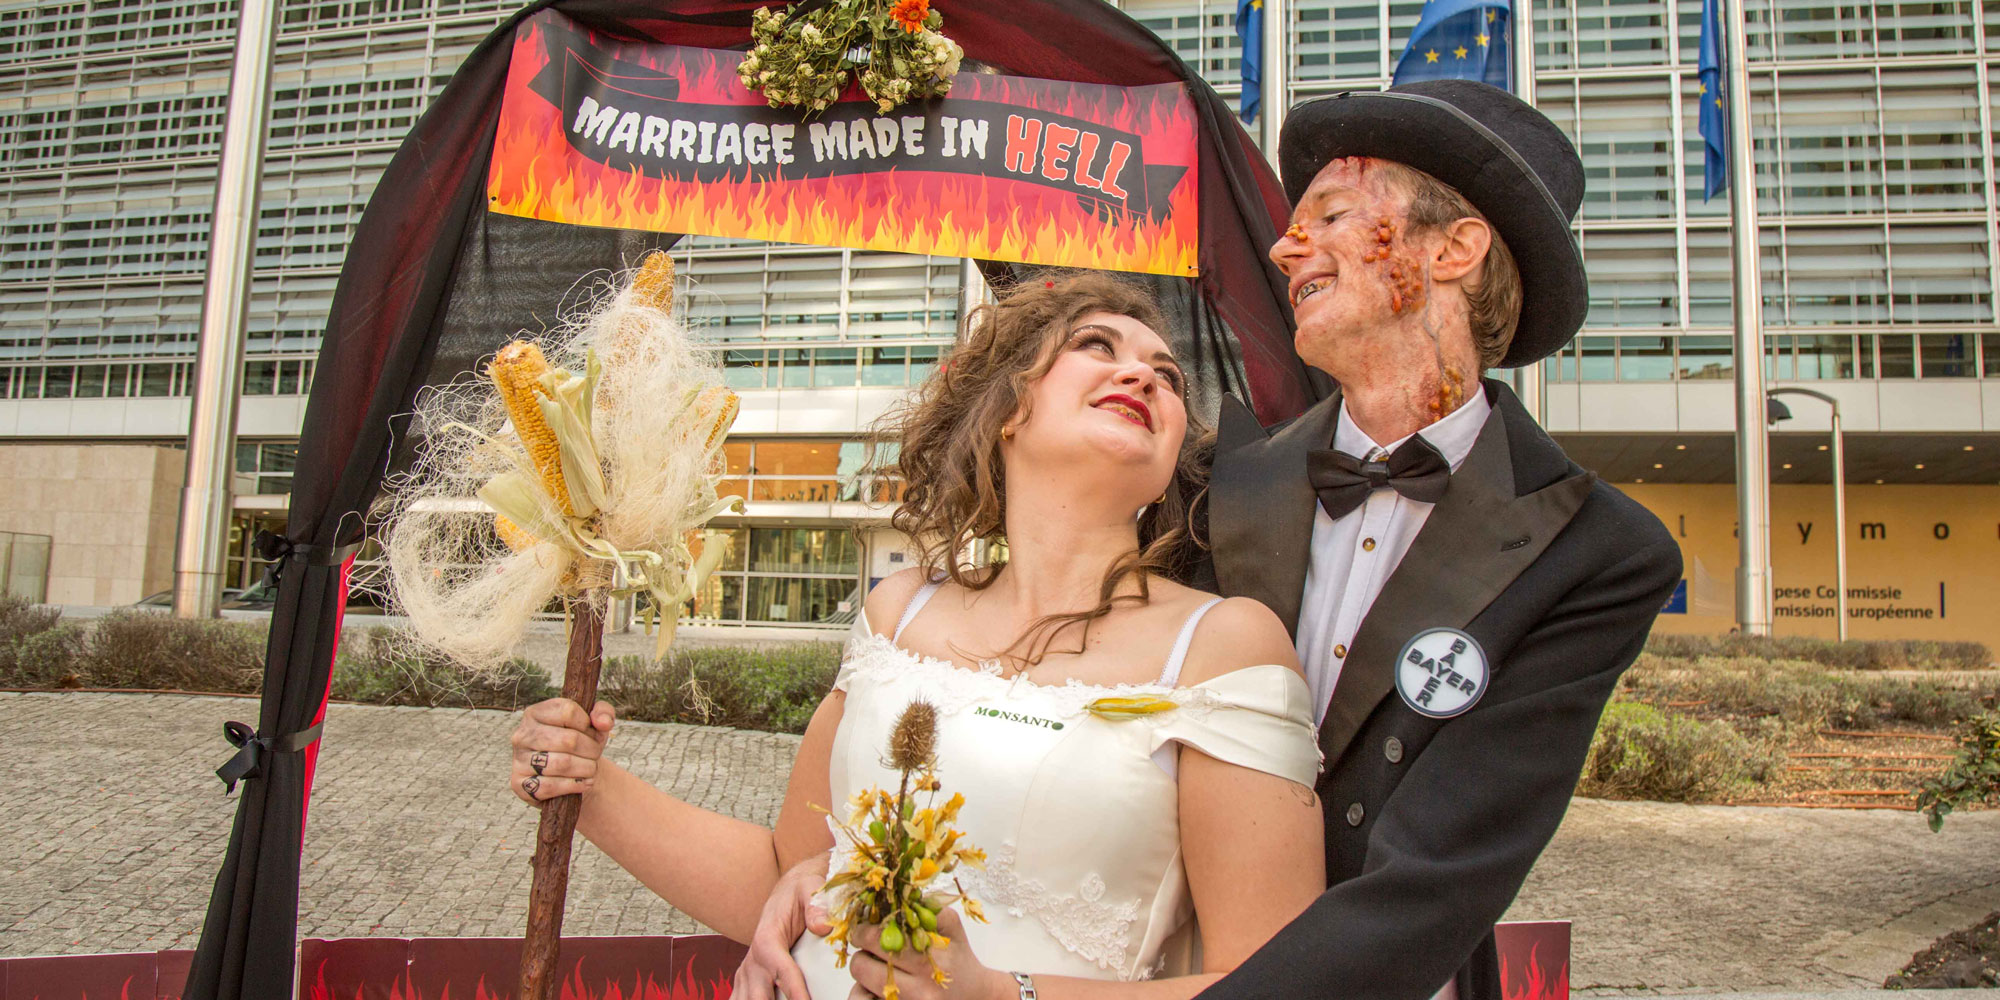 Opposition Mounts To Marriage Made In Hell Bayer Monsanto Mega The Merger Friends Of Earth Europe